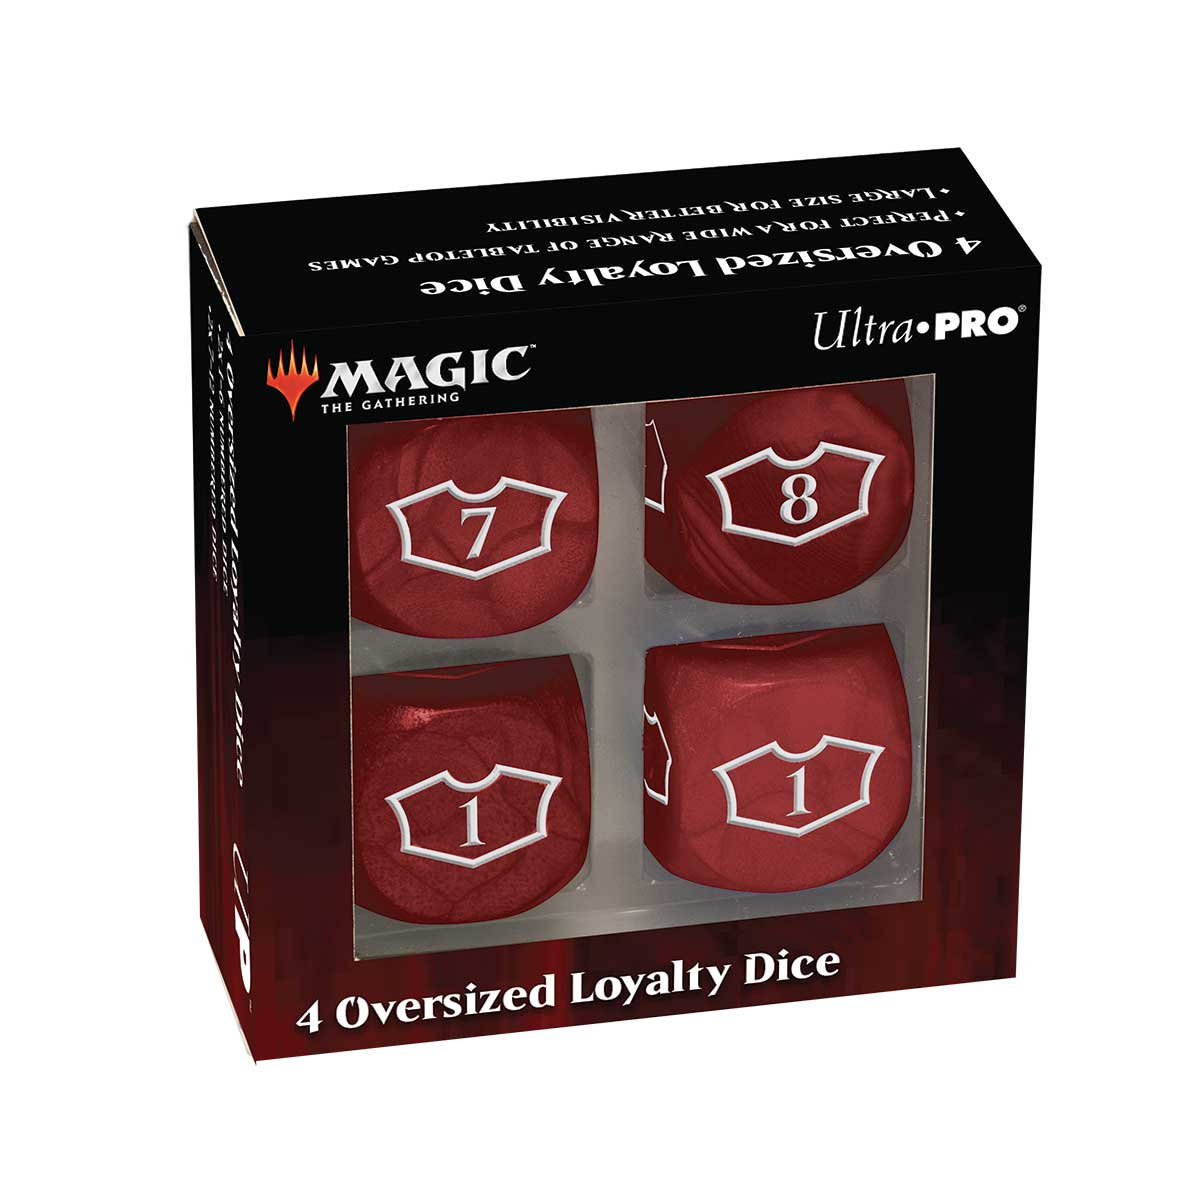 Ultra Pro: Magic the Gathering - Mountain Loyalty Dice